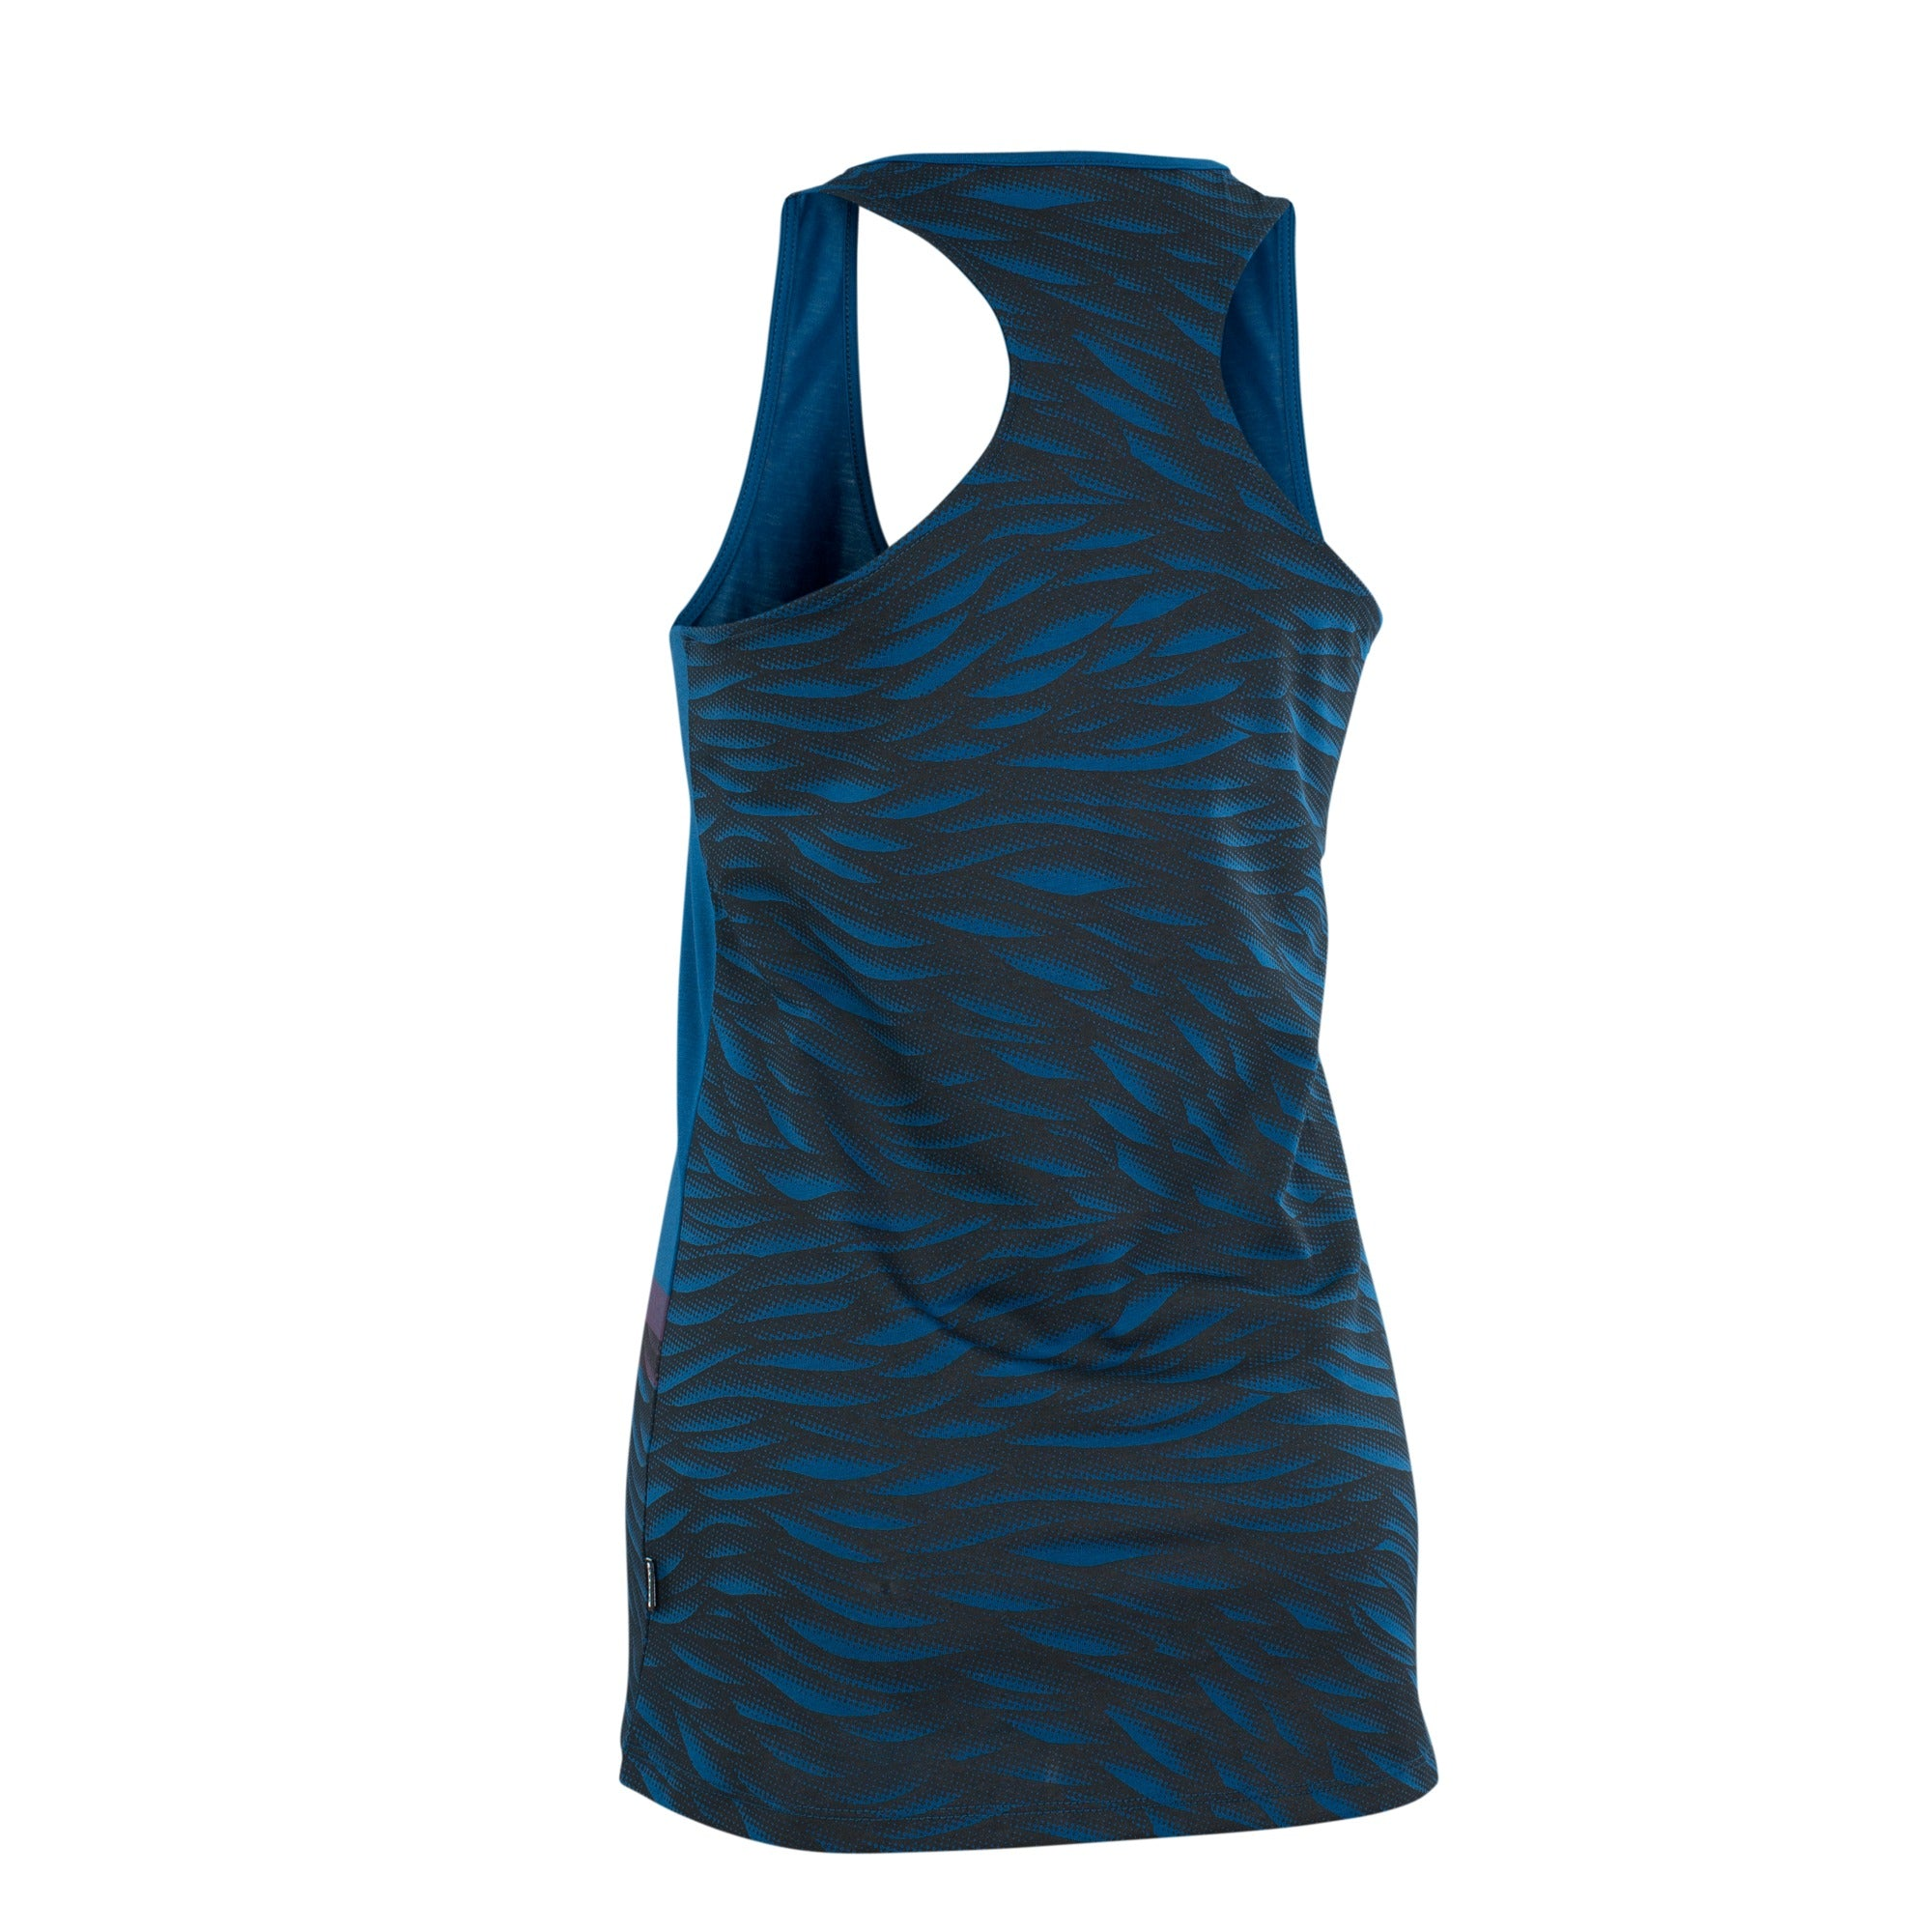 TANK TOP SEEK WMS OCEAN BLUE